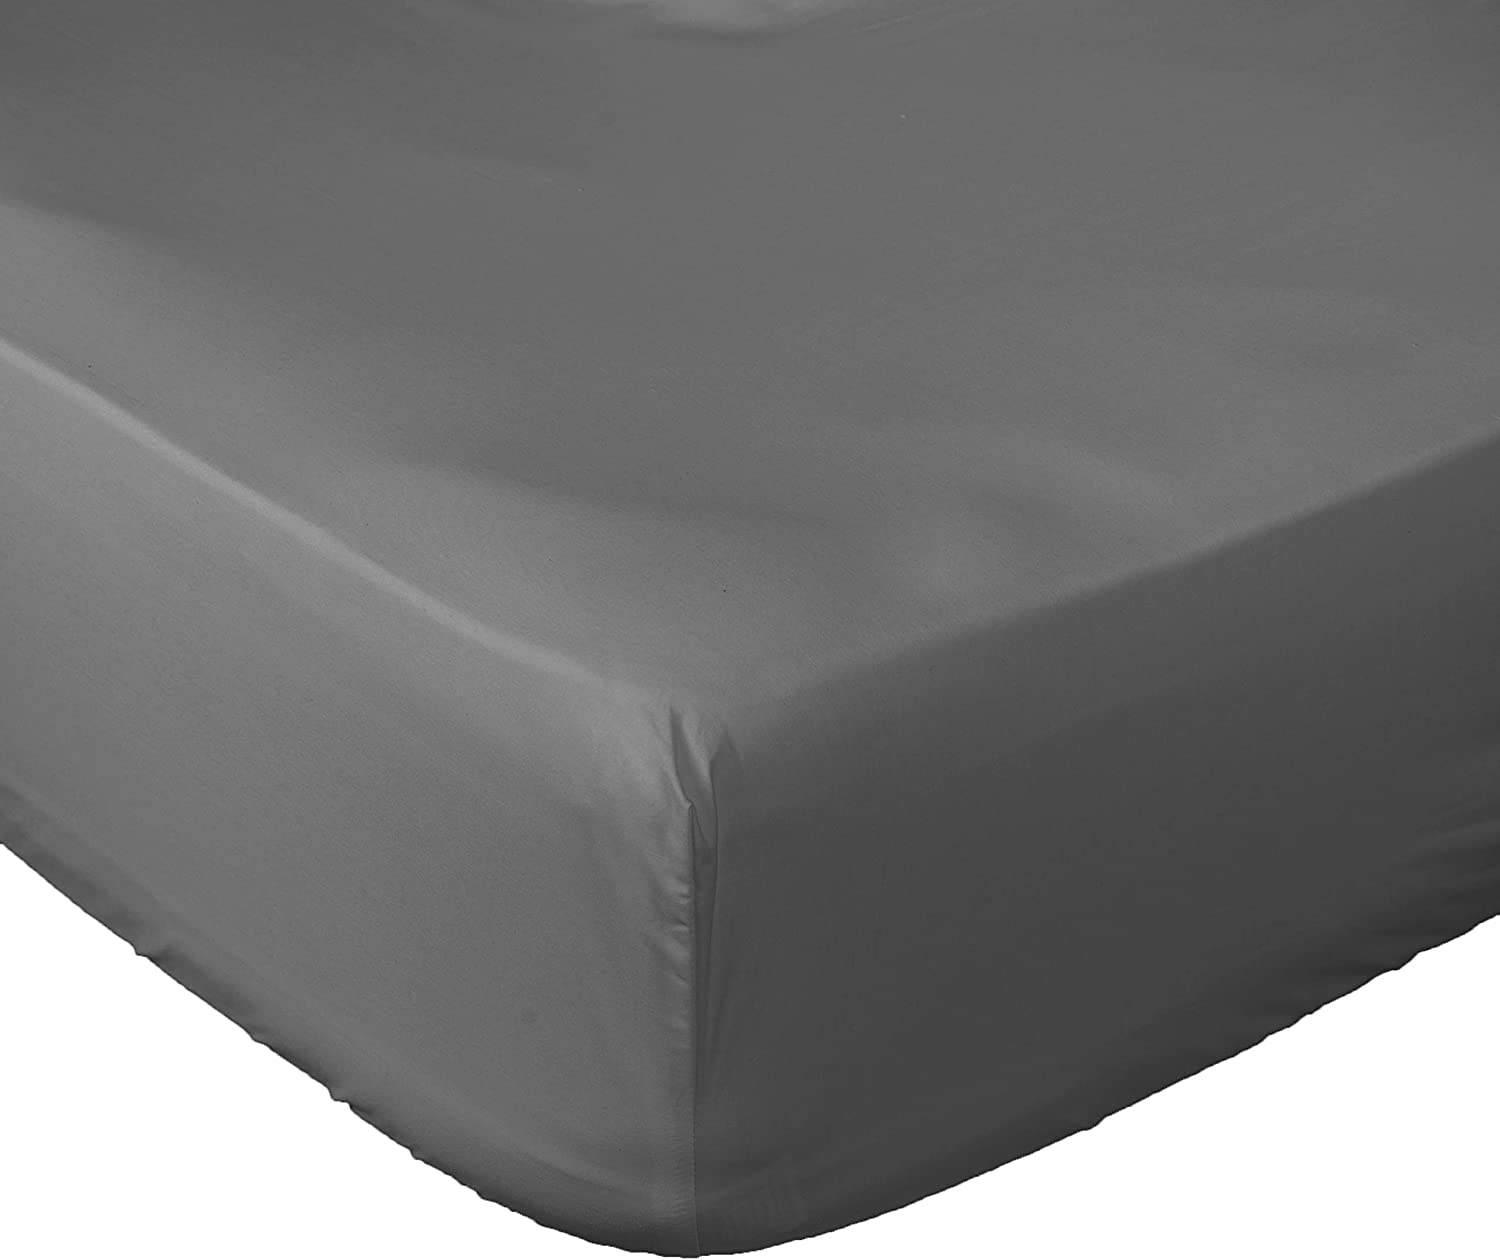 Lux Decor Collection Fitted Sheet Queen White Brushed Microfiber 1800 Bedding - Wrinkle, Fade, Stain Resistant - Hypoallergenic (Grey, Queen)